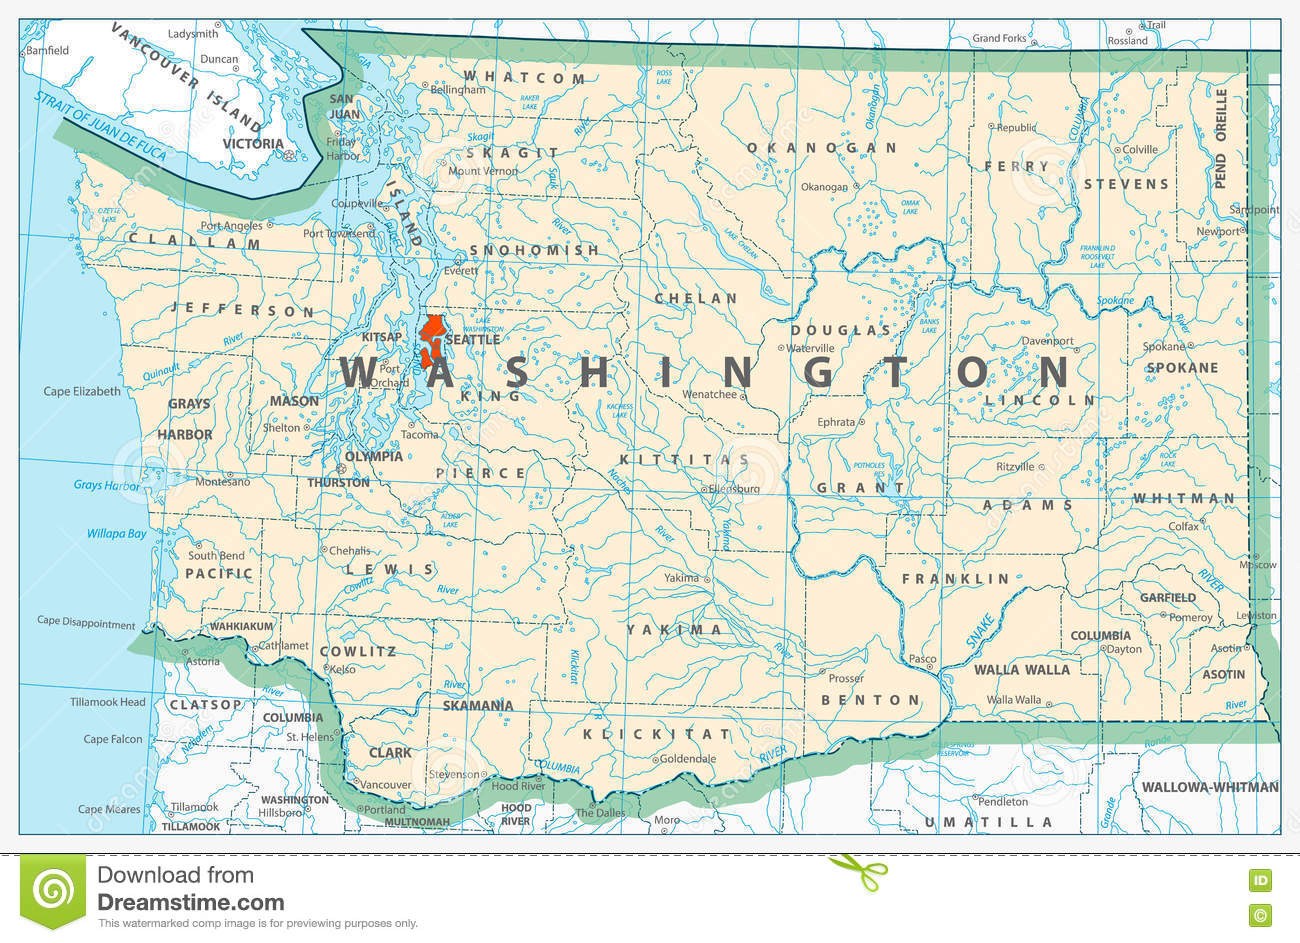 Washington State Map Royalty Free Stock Photography Image - Washington st map